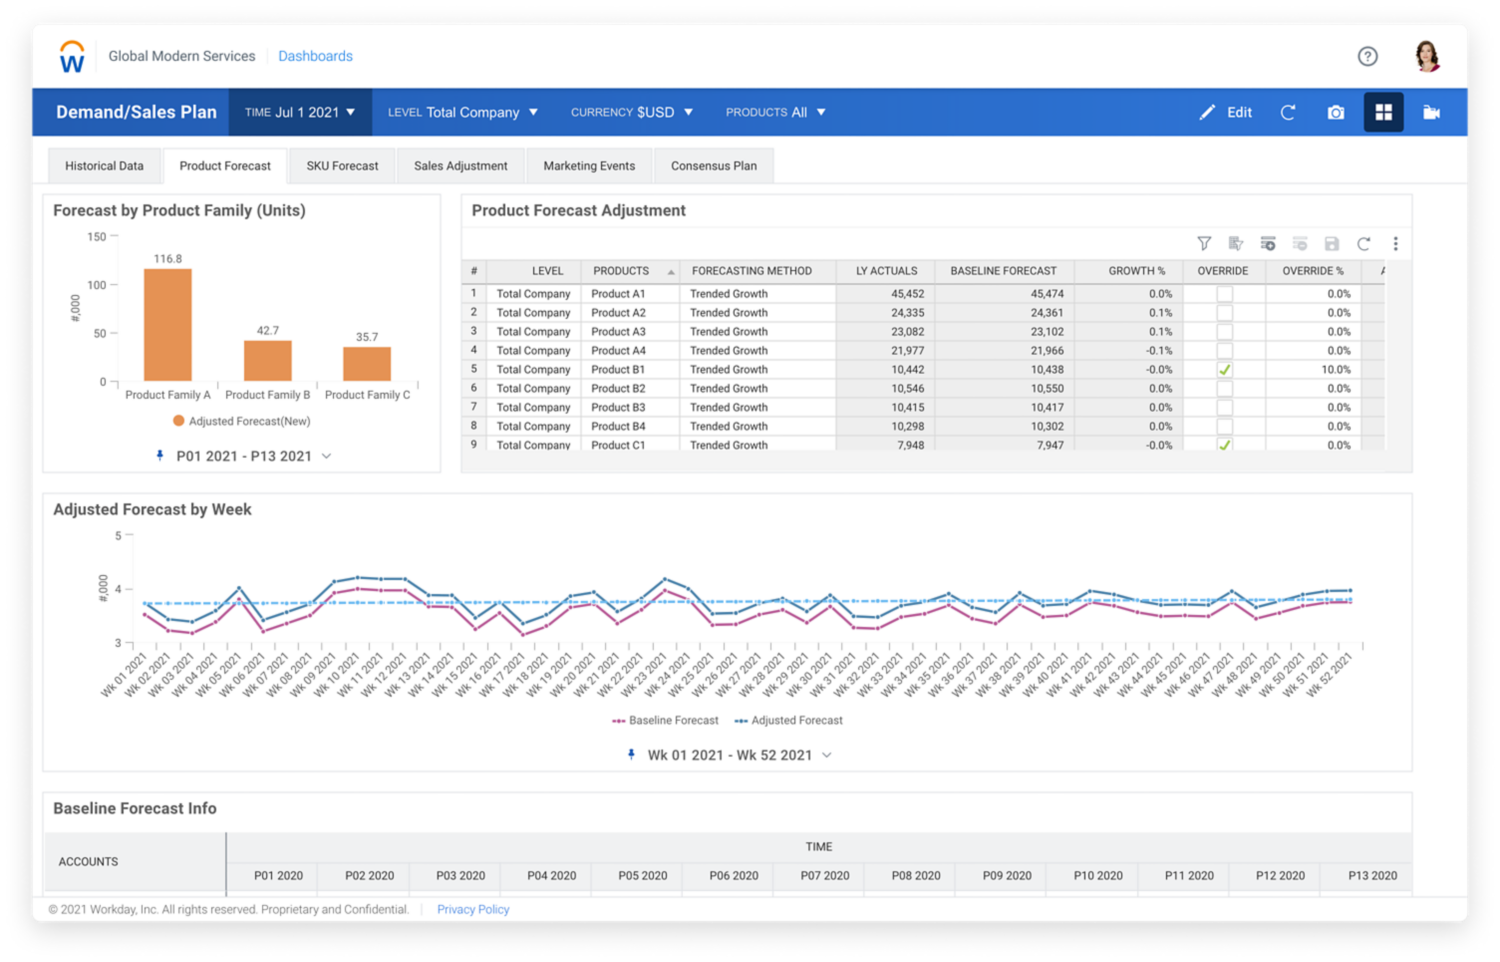 Demand and supply planning dashboard in Workday Adaptive Planning software, showing numerical values and charts for product forecast.